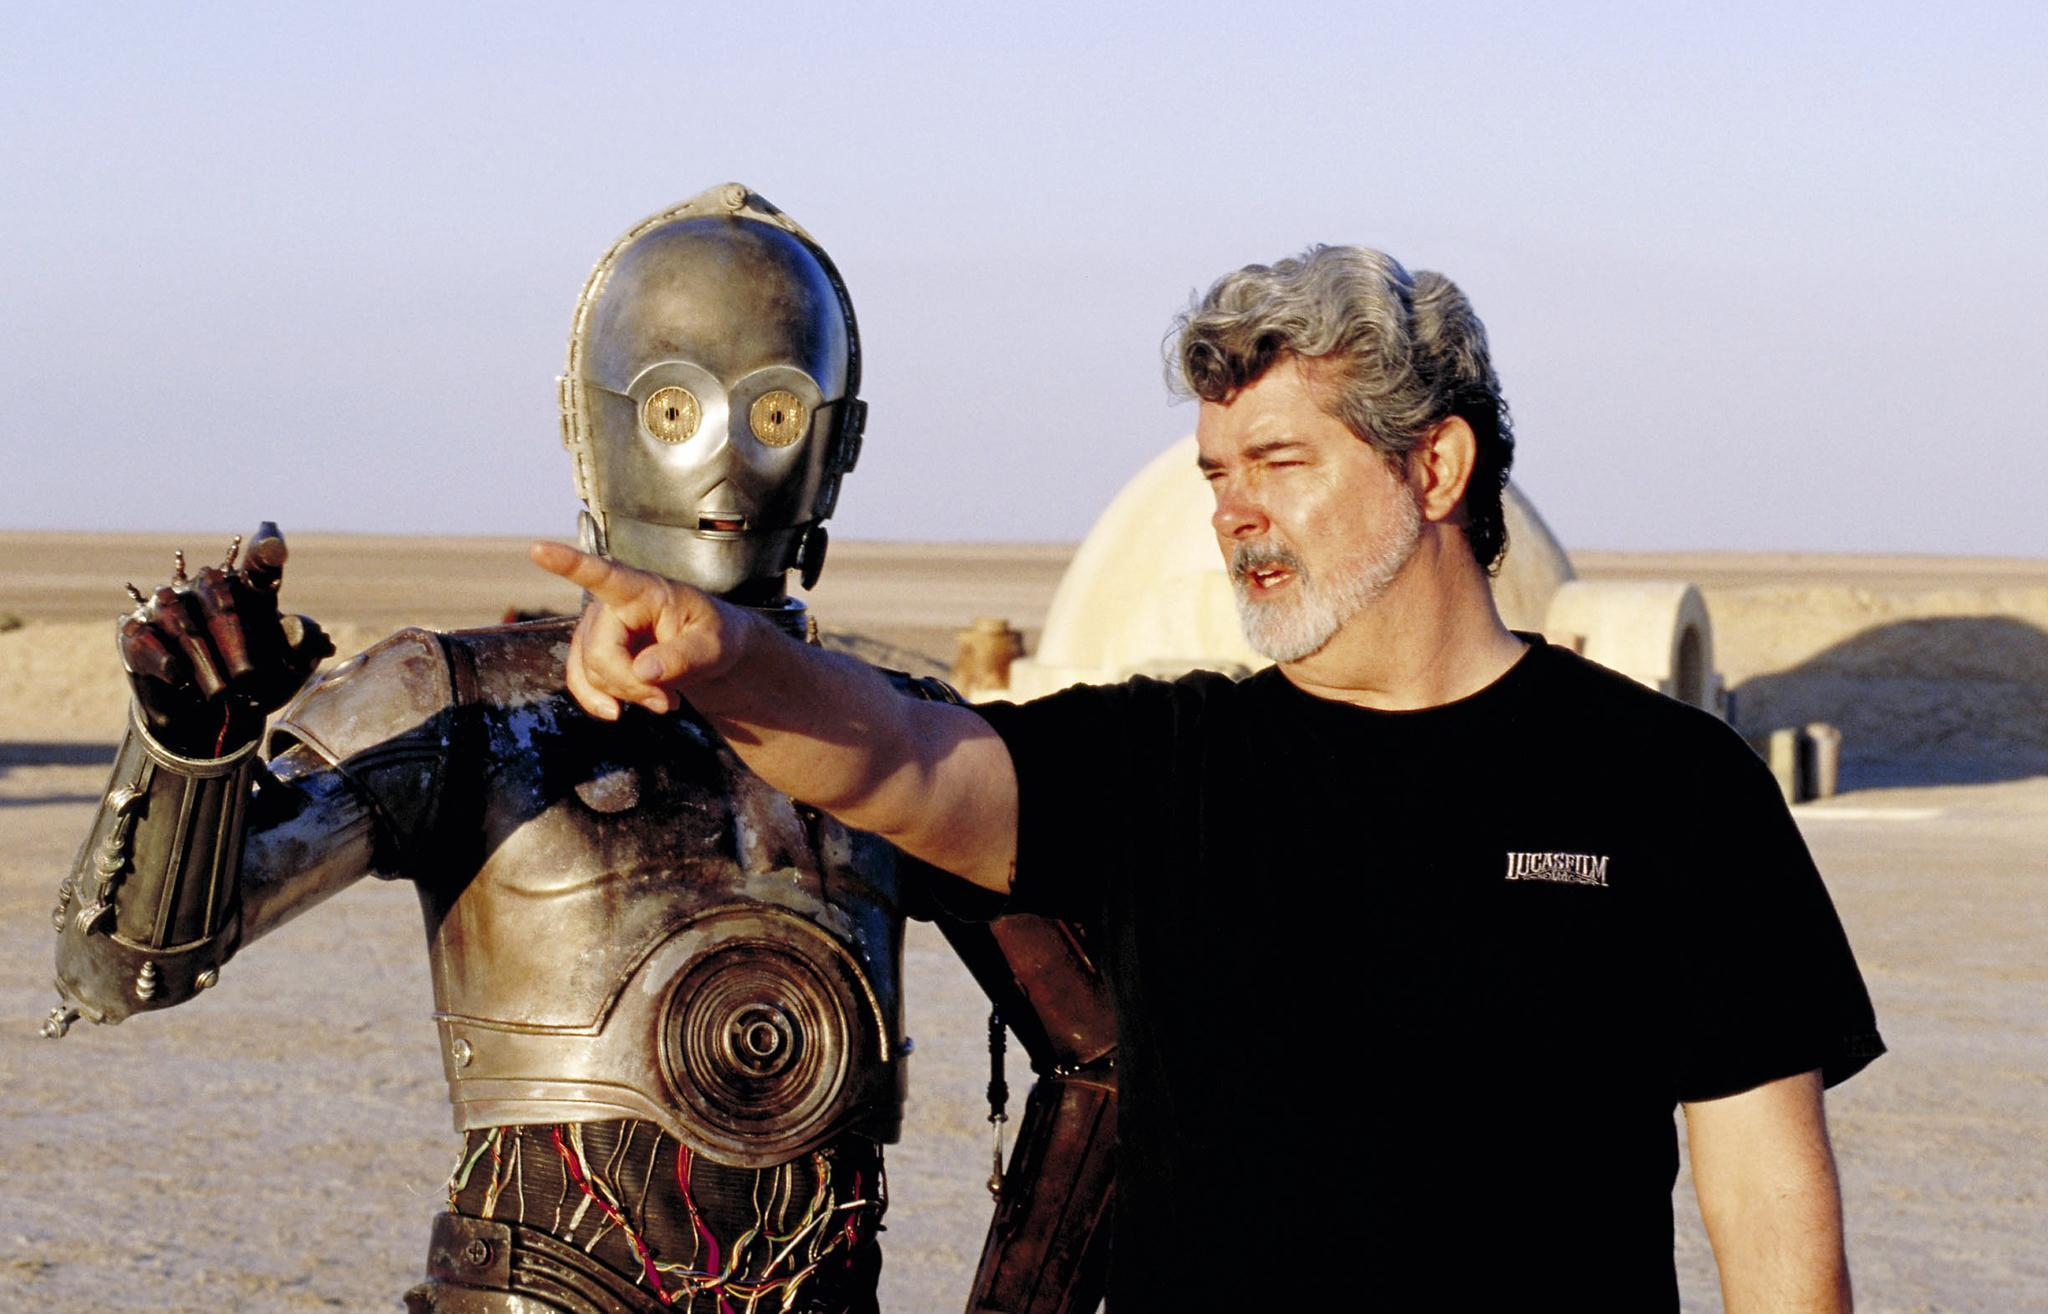 RUMOR: George Lucas Reportedly Wants To Make His Original Sequel Trilogy